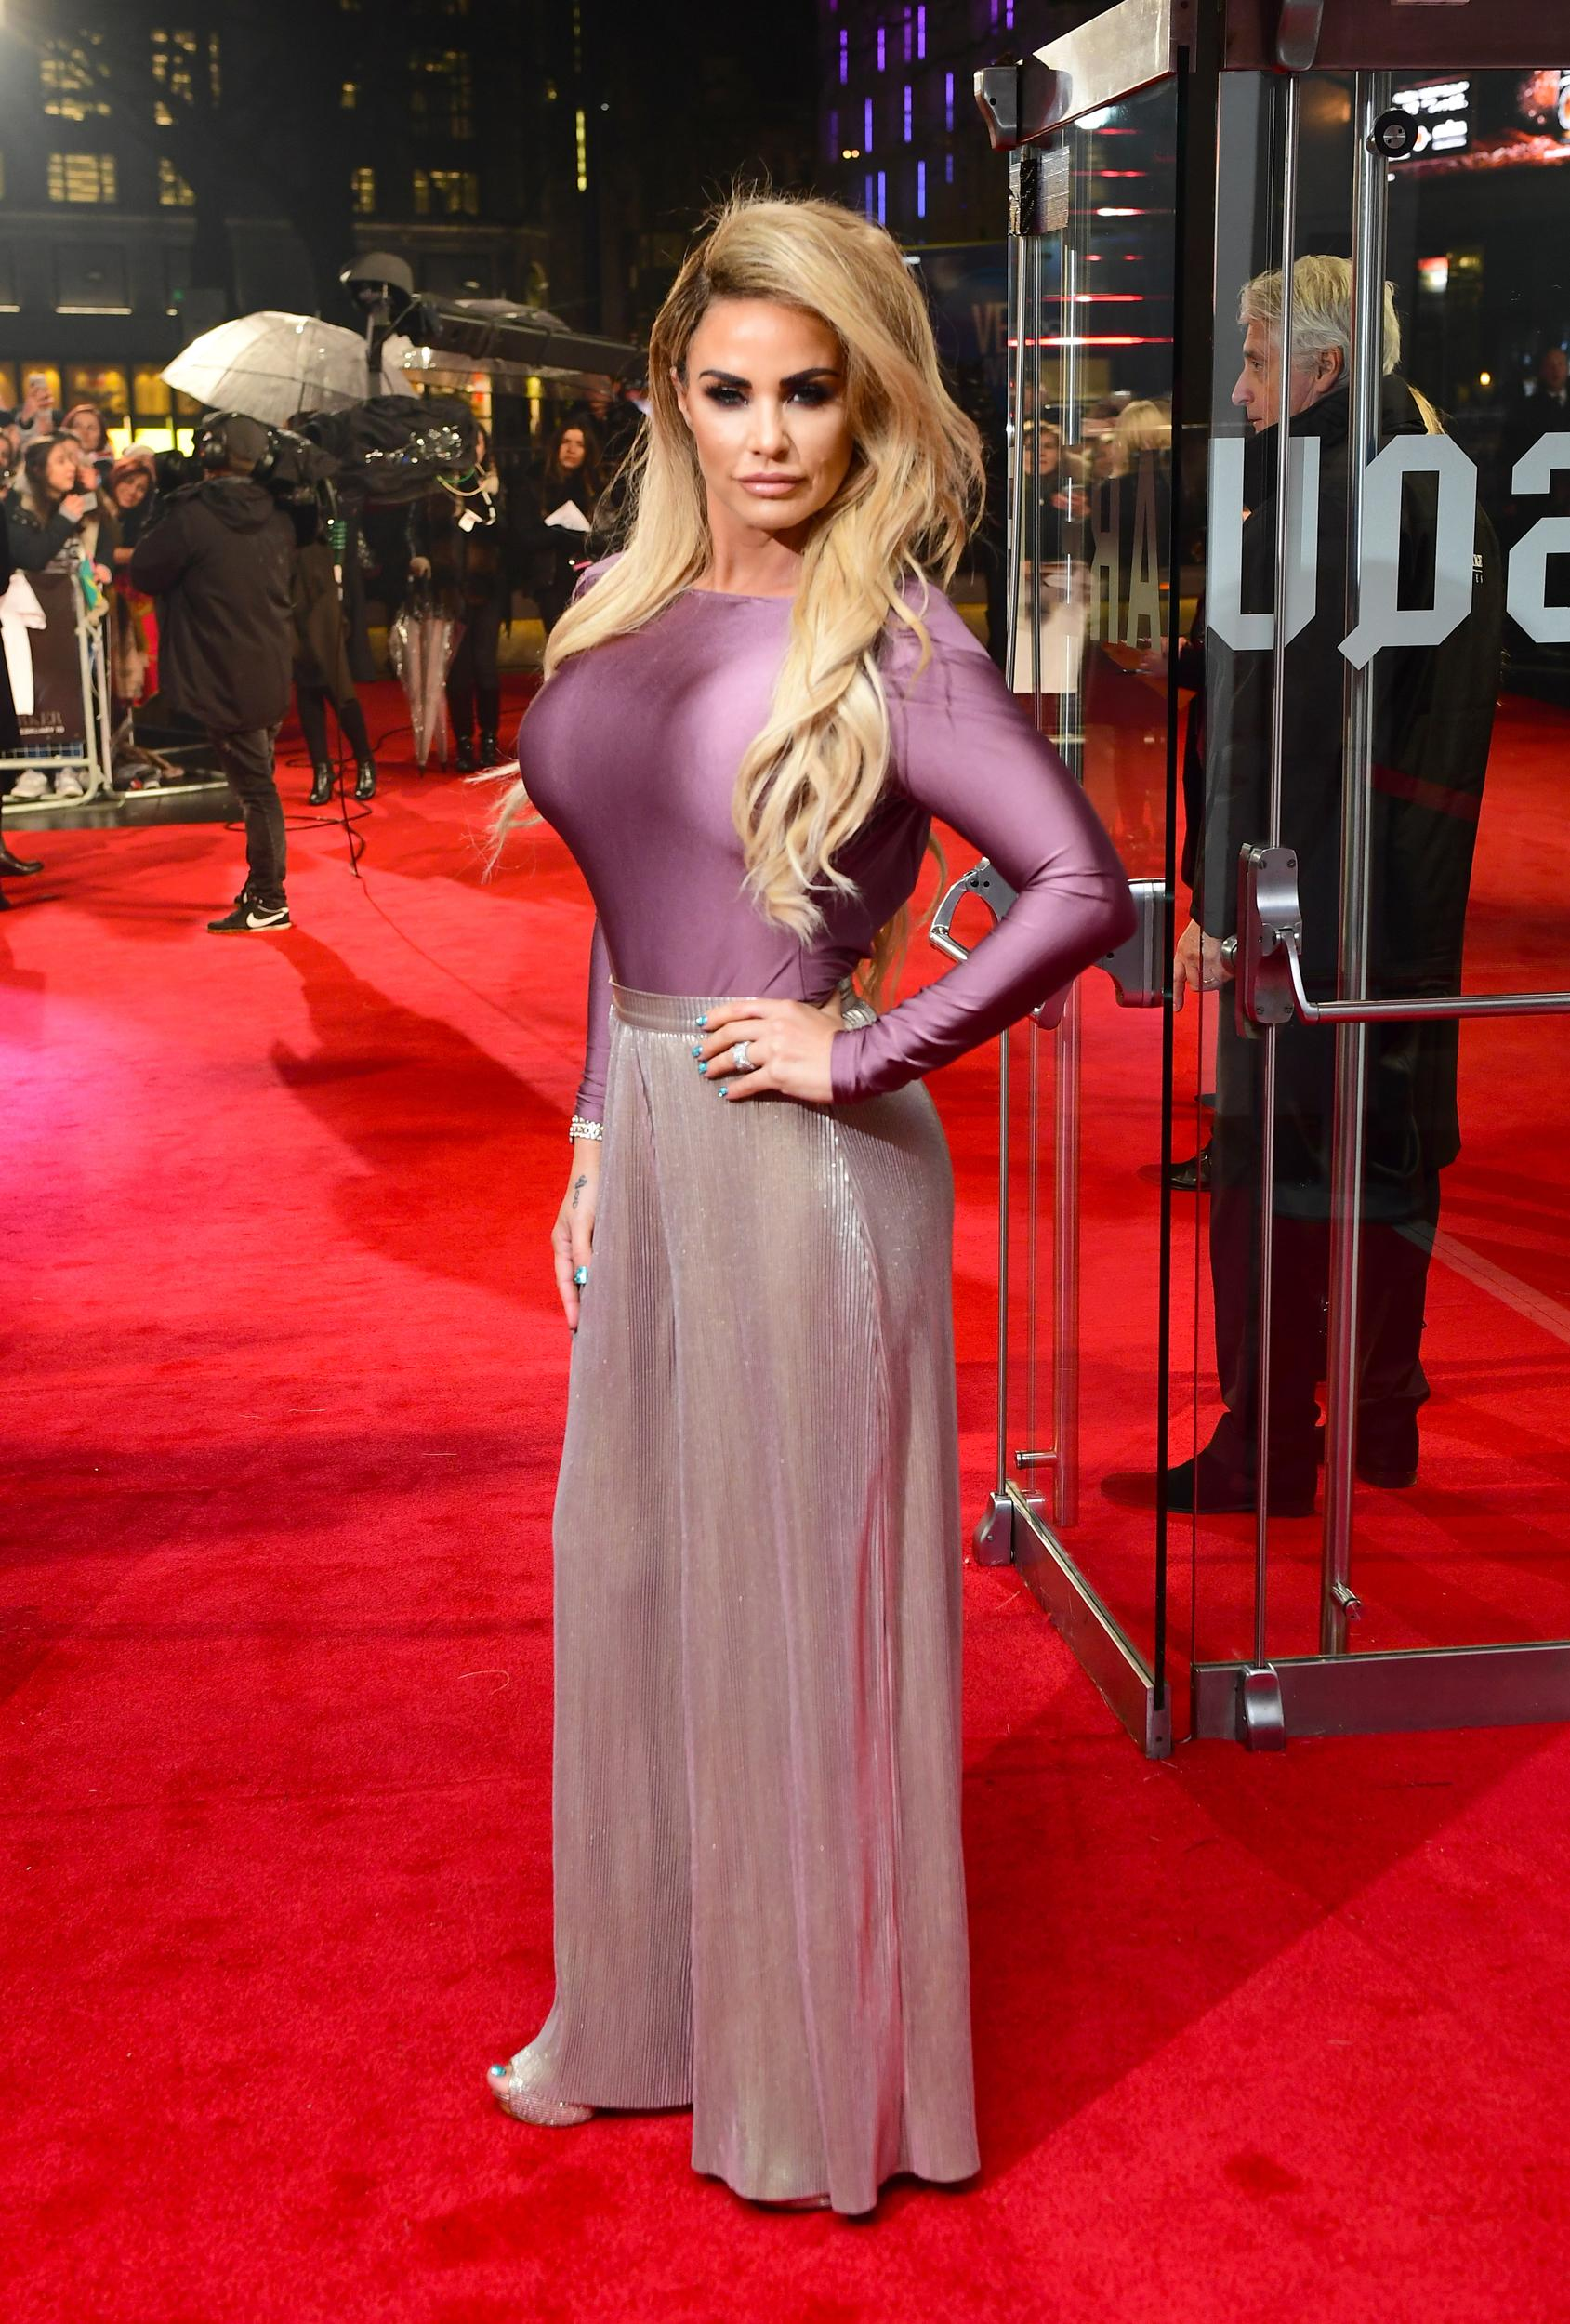 Katie Price arriving for the Fifty Shades Darker European Premiere held at Odeon Leicester Square, London.